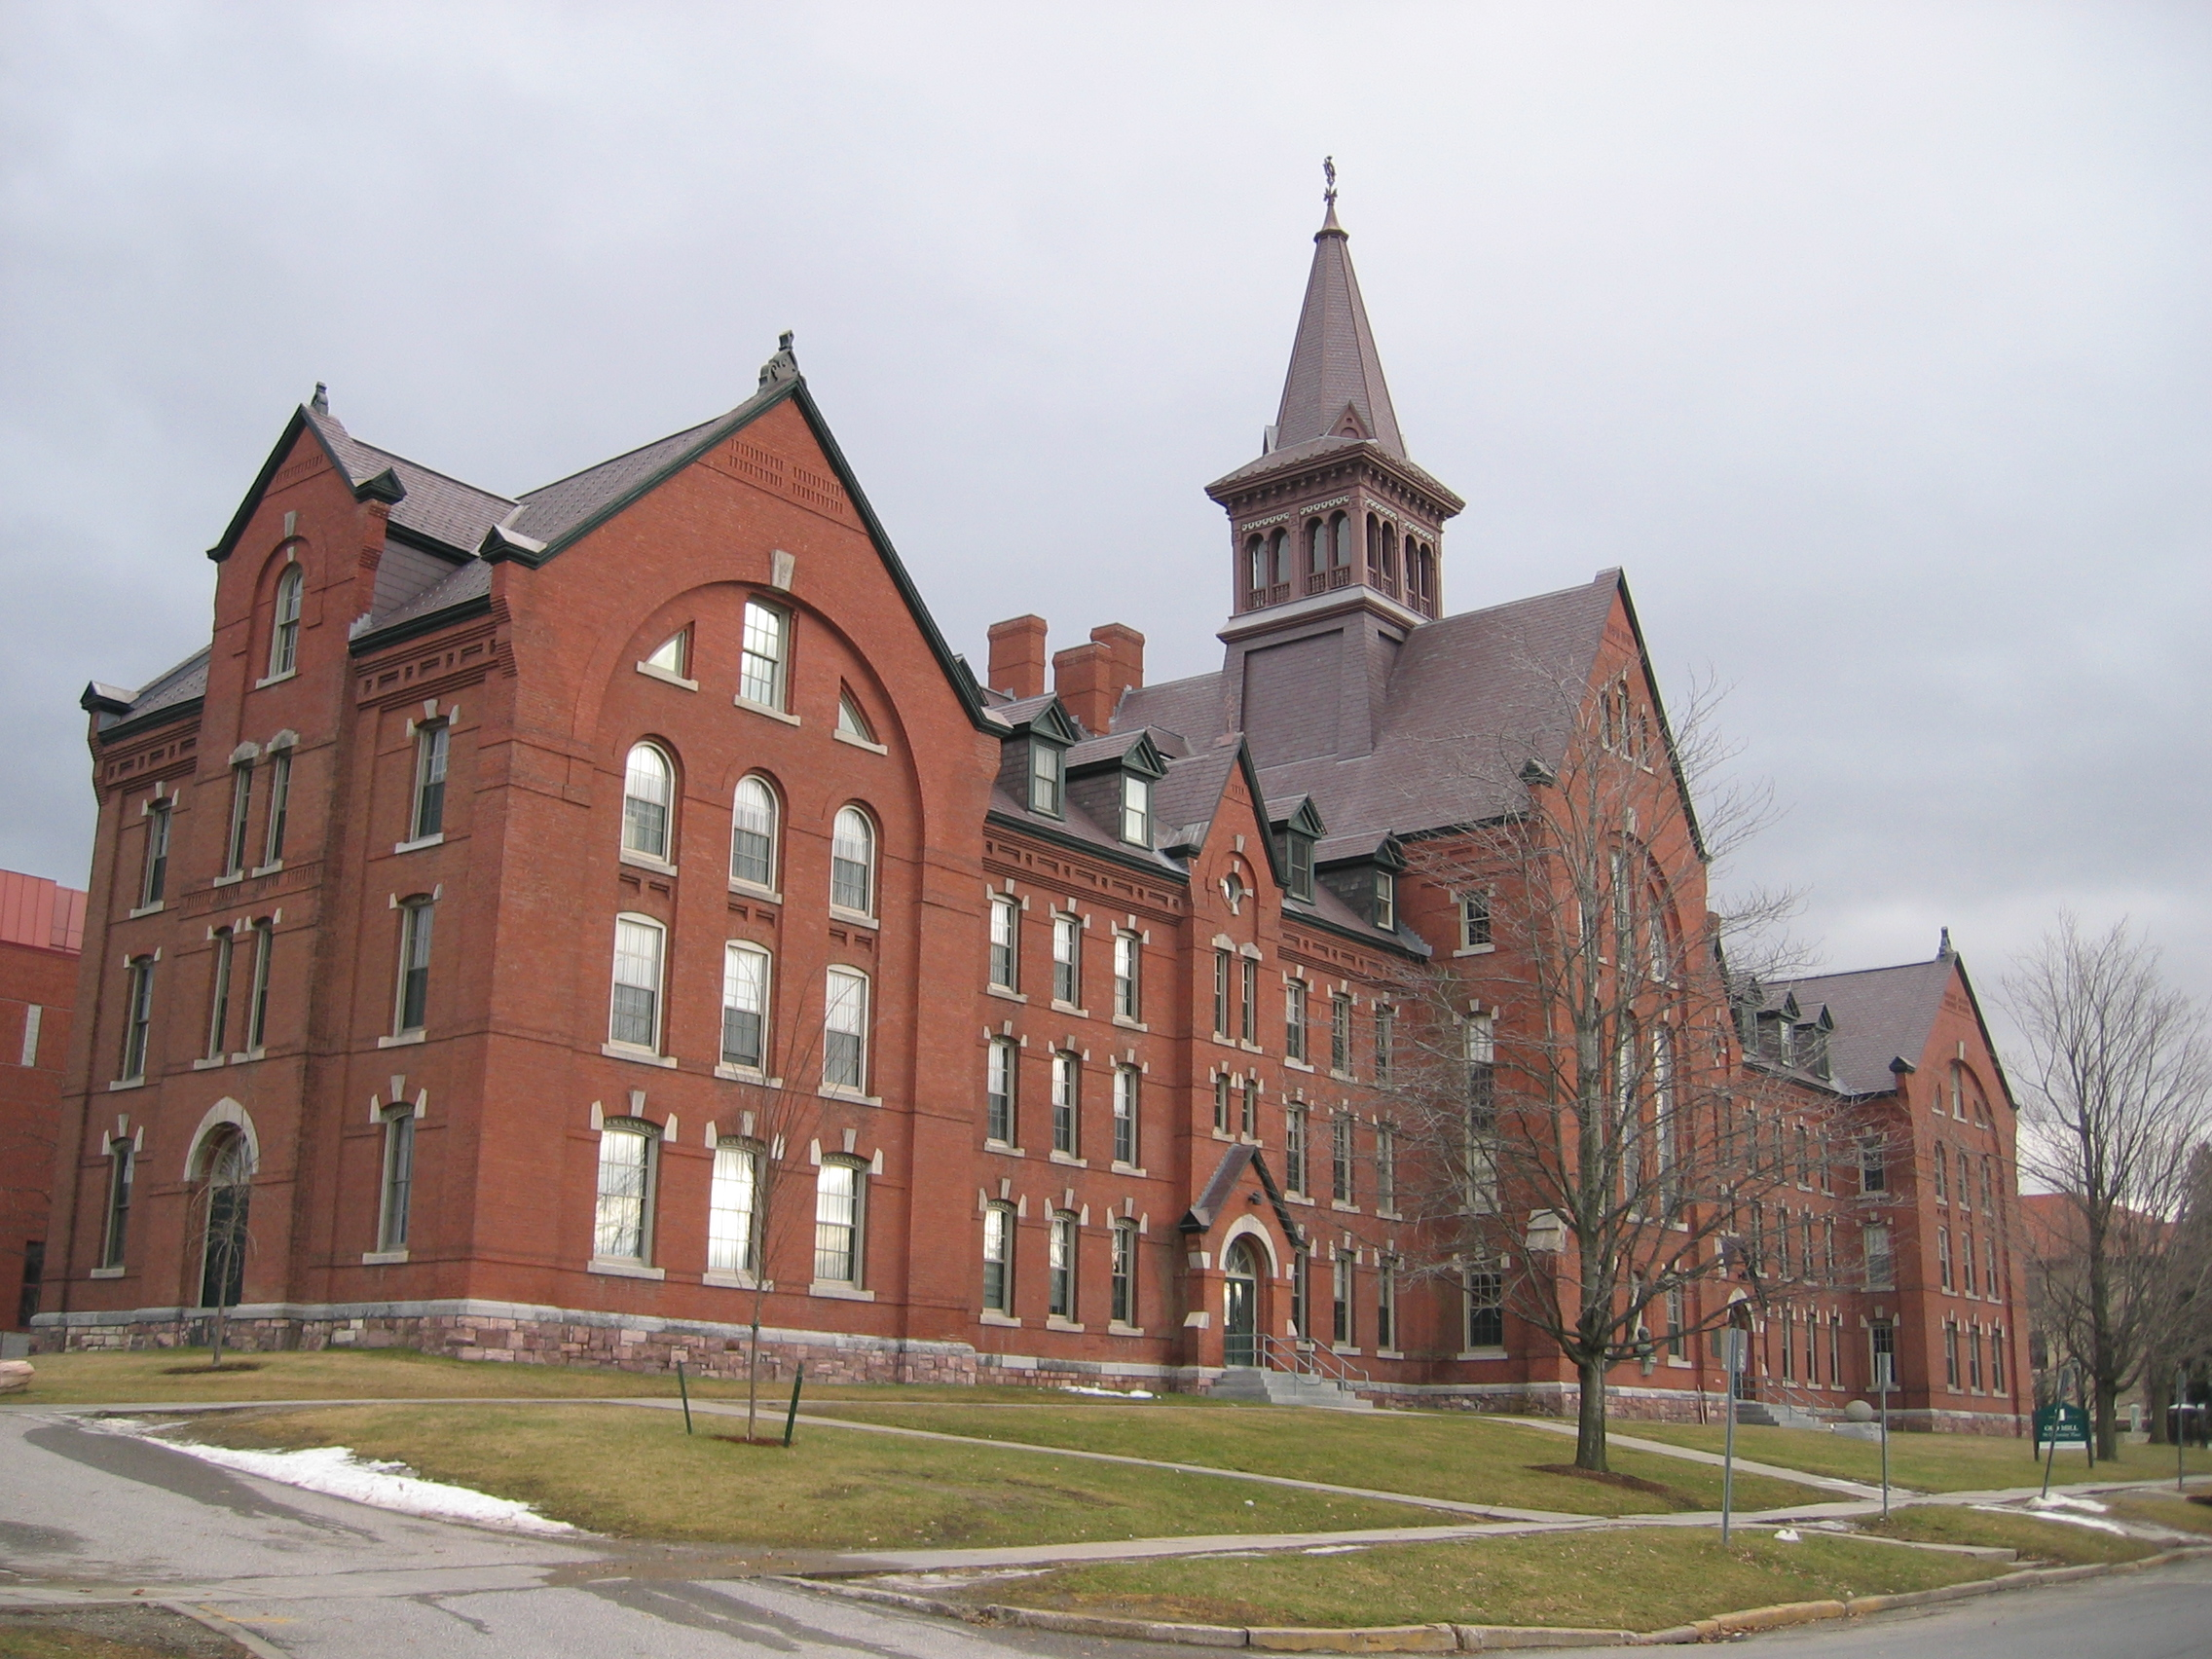 The University of Vermont Old Mill, the oldest building of the university